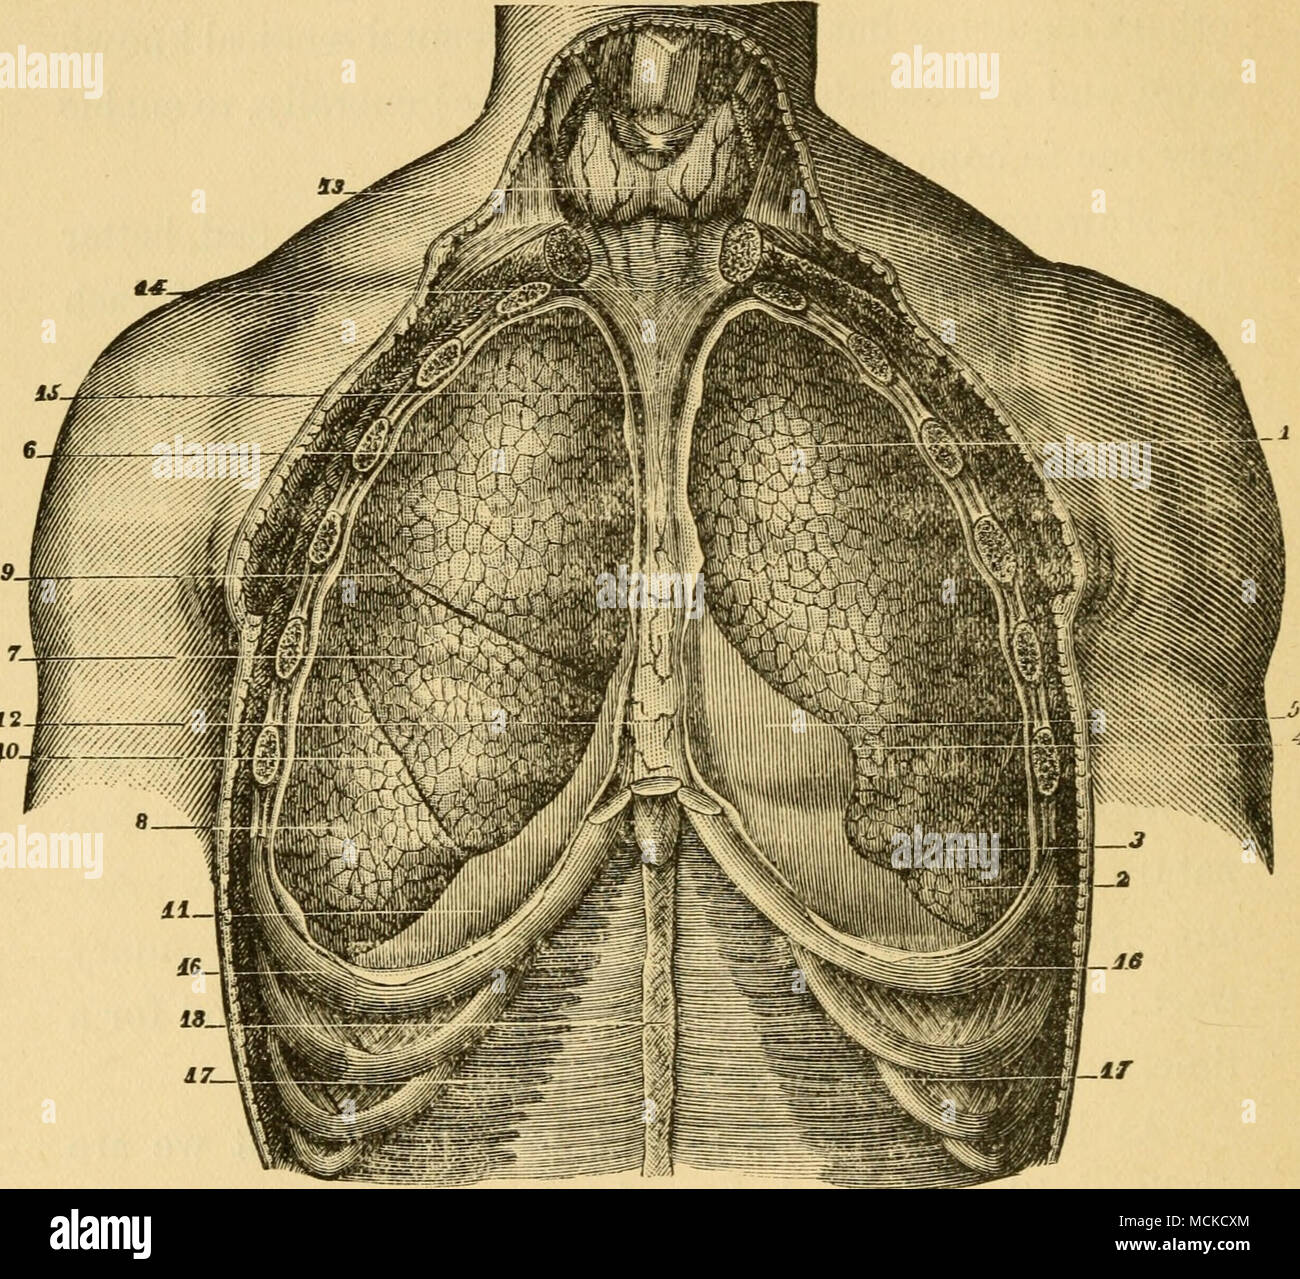 Fig 12lungs anterior view sappey 1 upper lobe of left lung 1 upper lobe of left lung 2 lower lobe 3 fissure 4 notch corresponding to apex of heart 5 pericardium 6 upper lobe of right ccuart Images